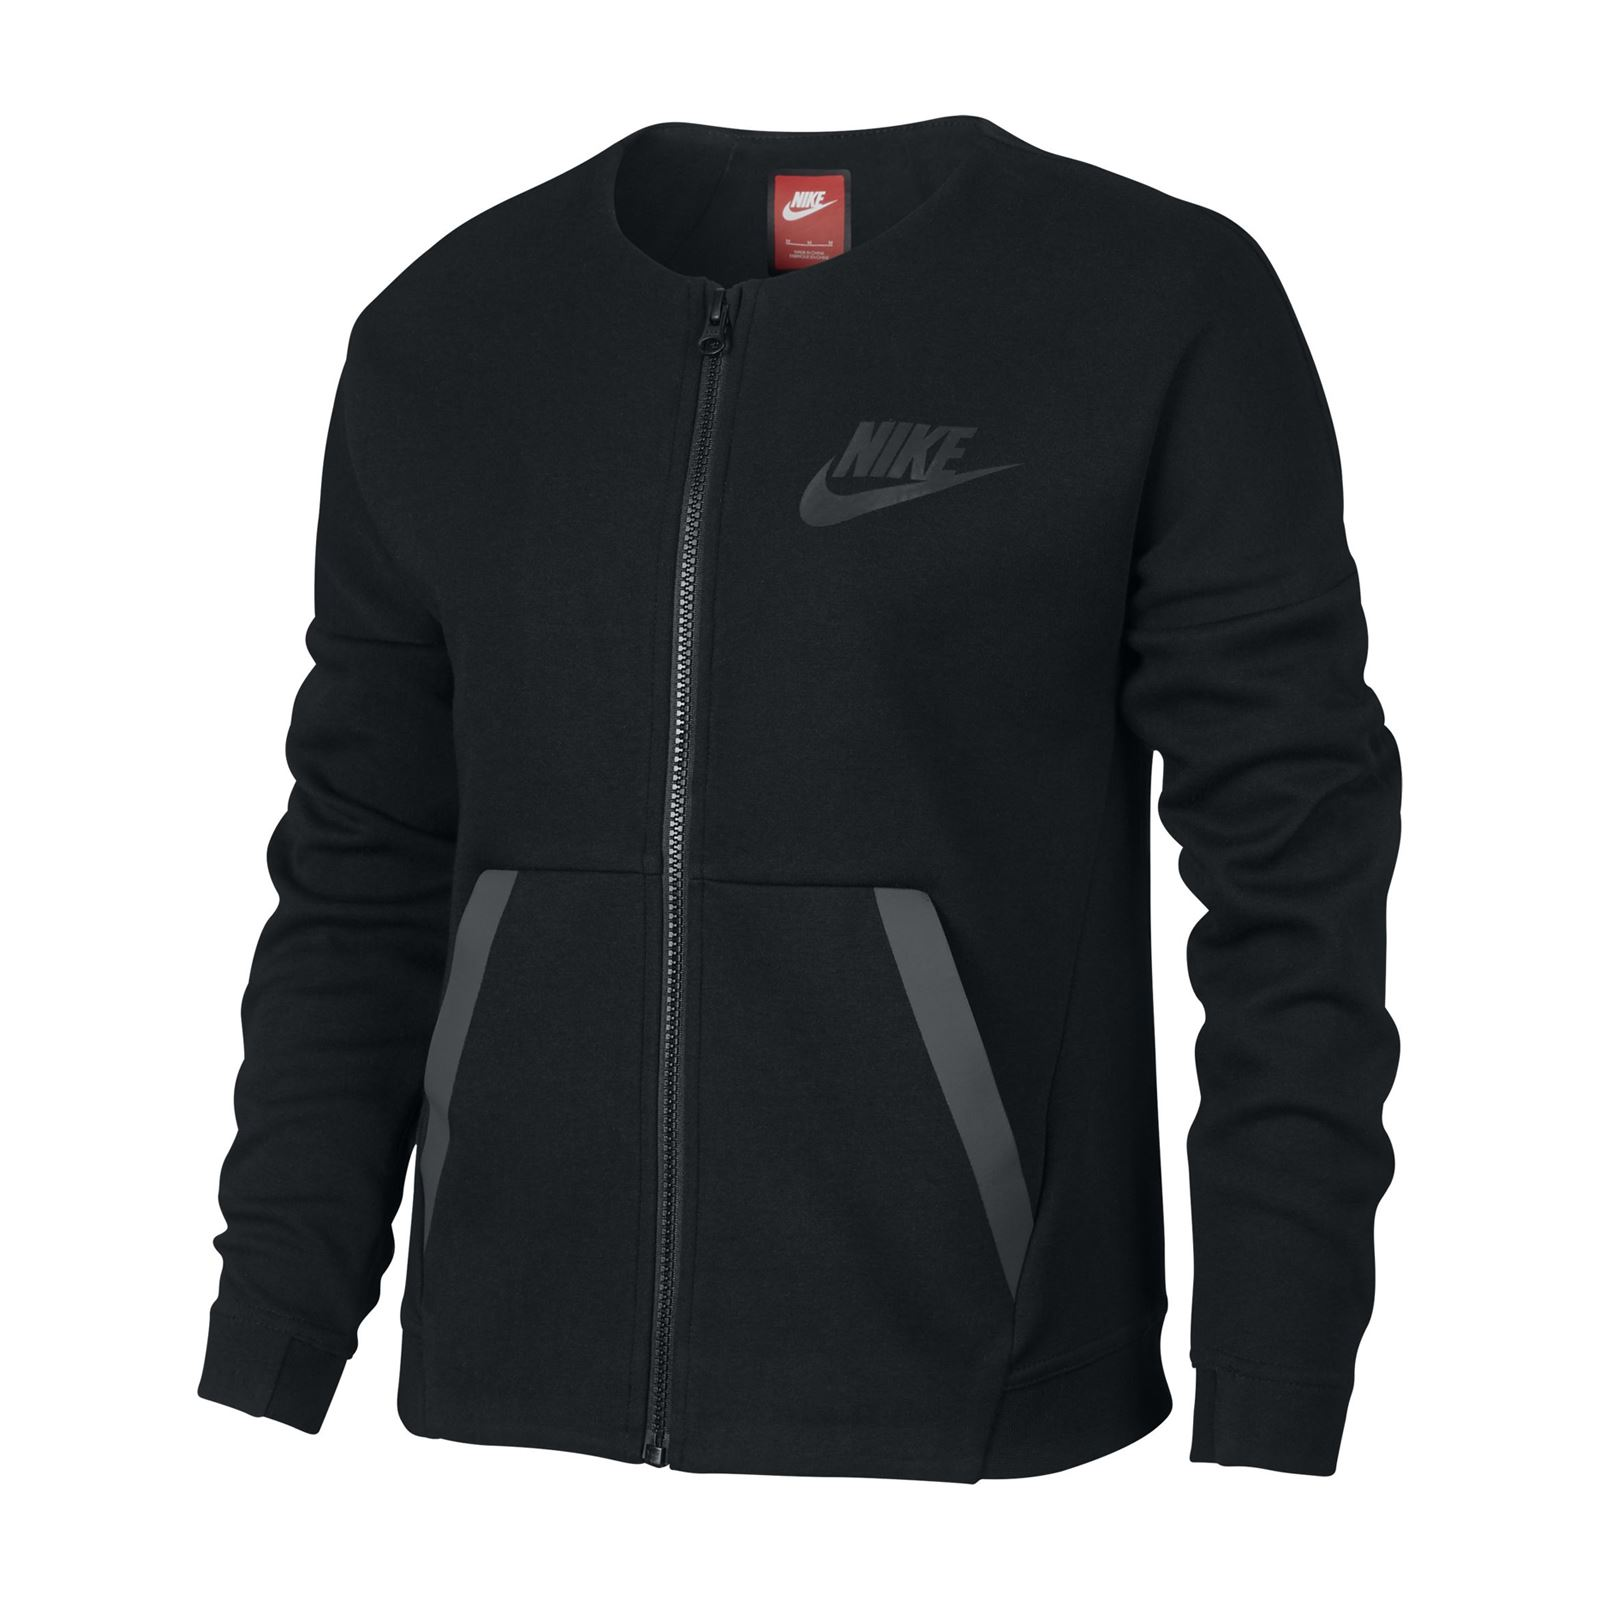 nike veste de sport noir brandalley. Black Bedroom Furniture Sets. Home Design Ideas